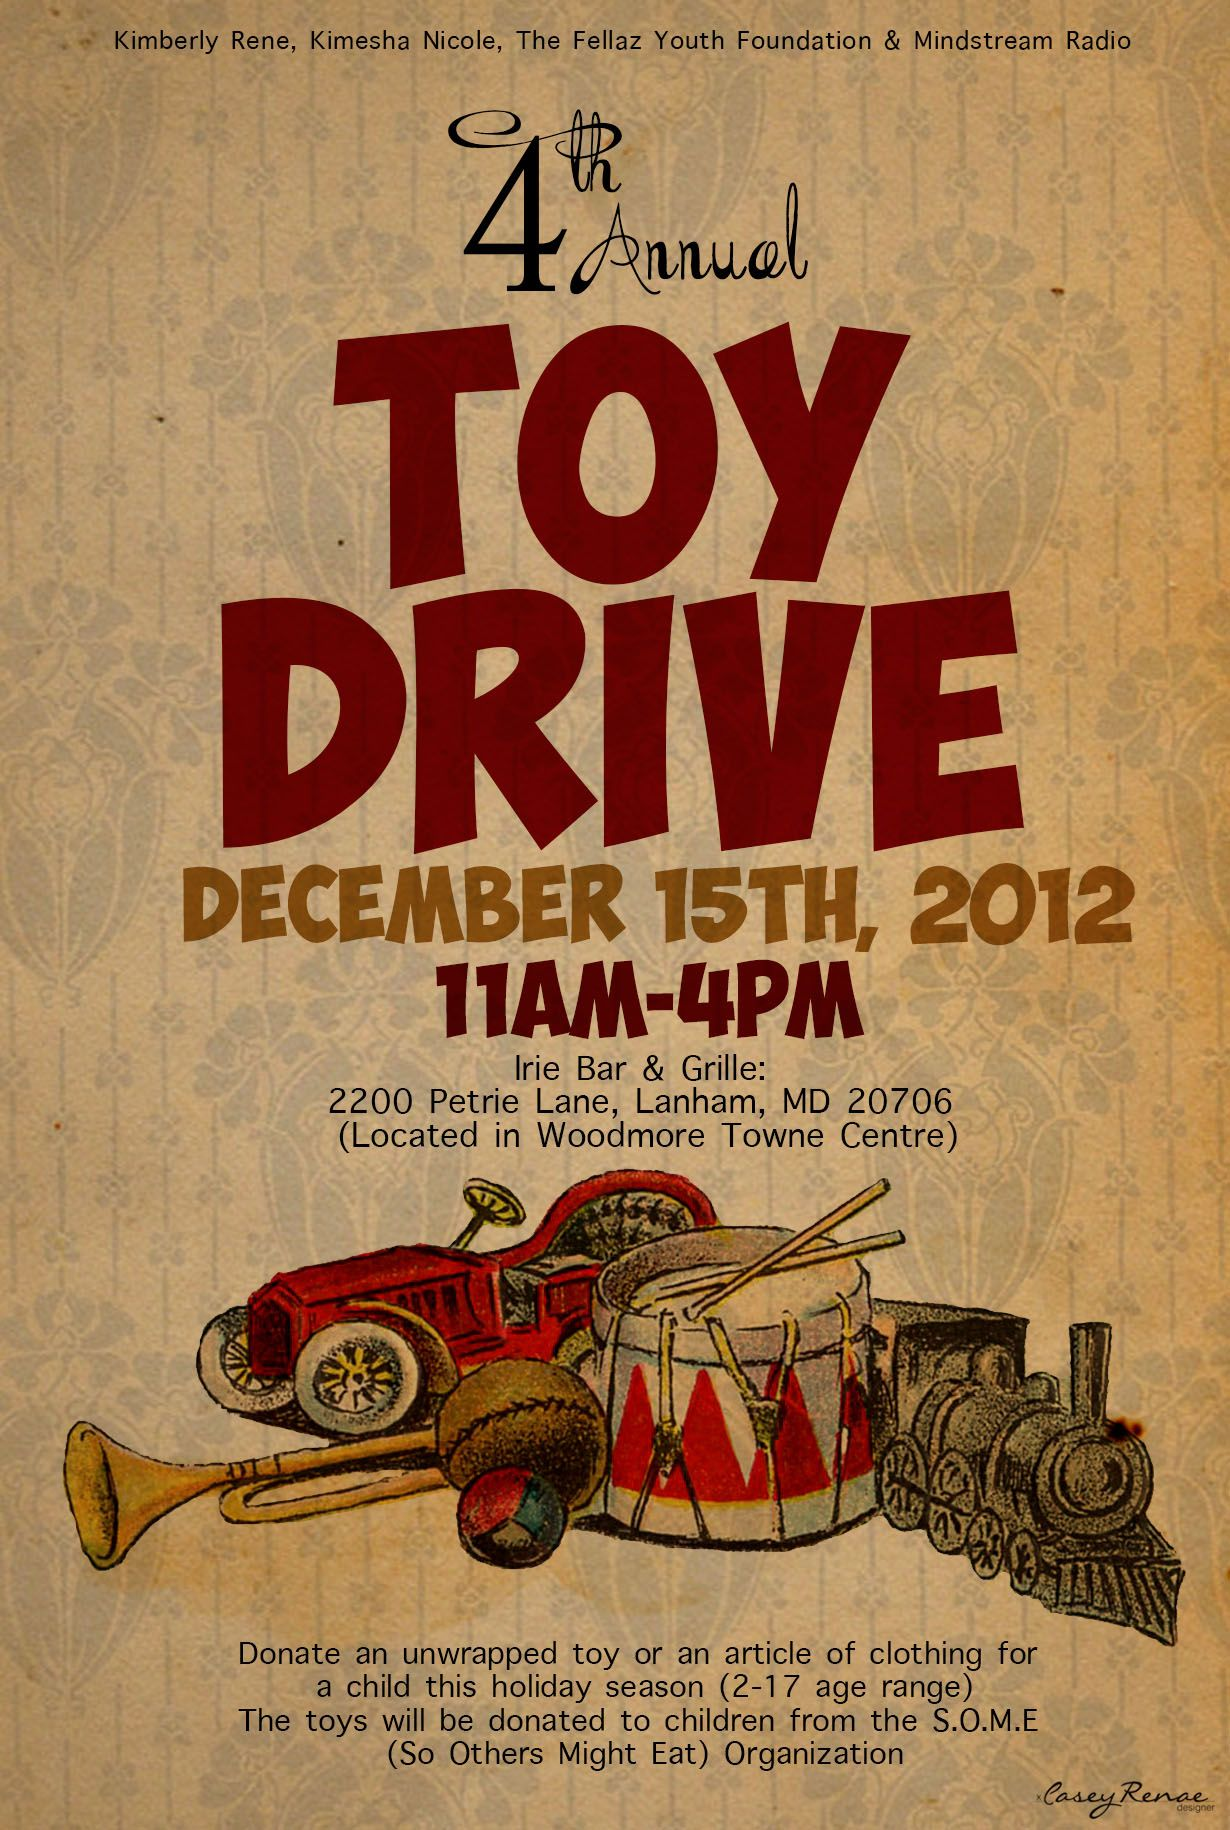 Free Christmas Toy Drive Flyer Template to download | FlyerTutor ...